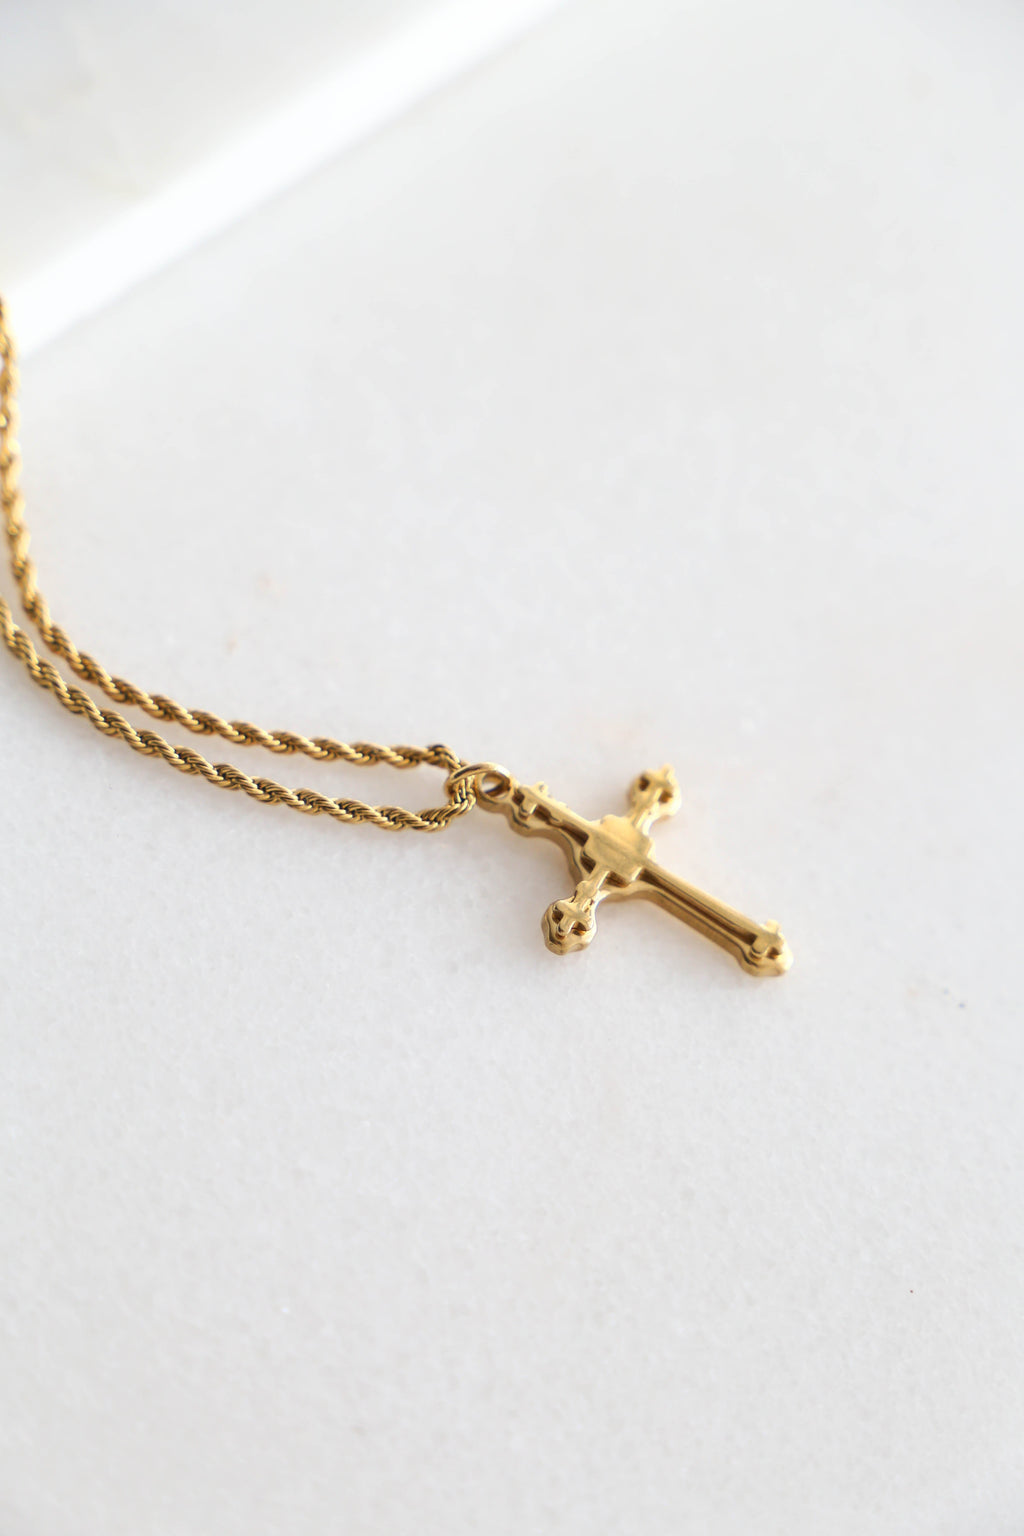 Statement Cross Necklace - Boutique Minimaliste